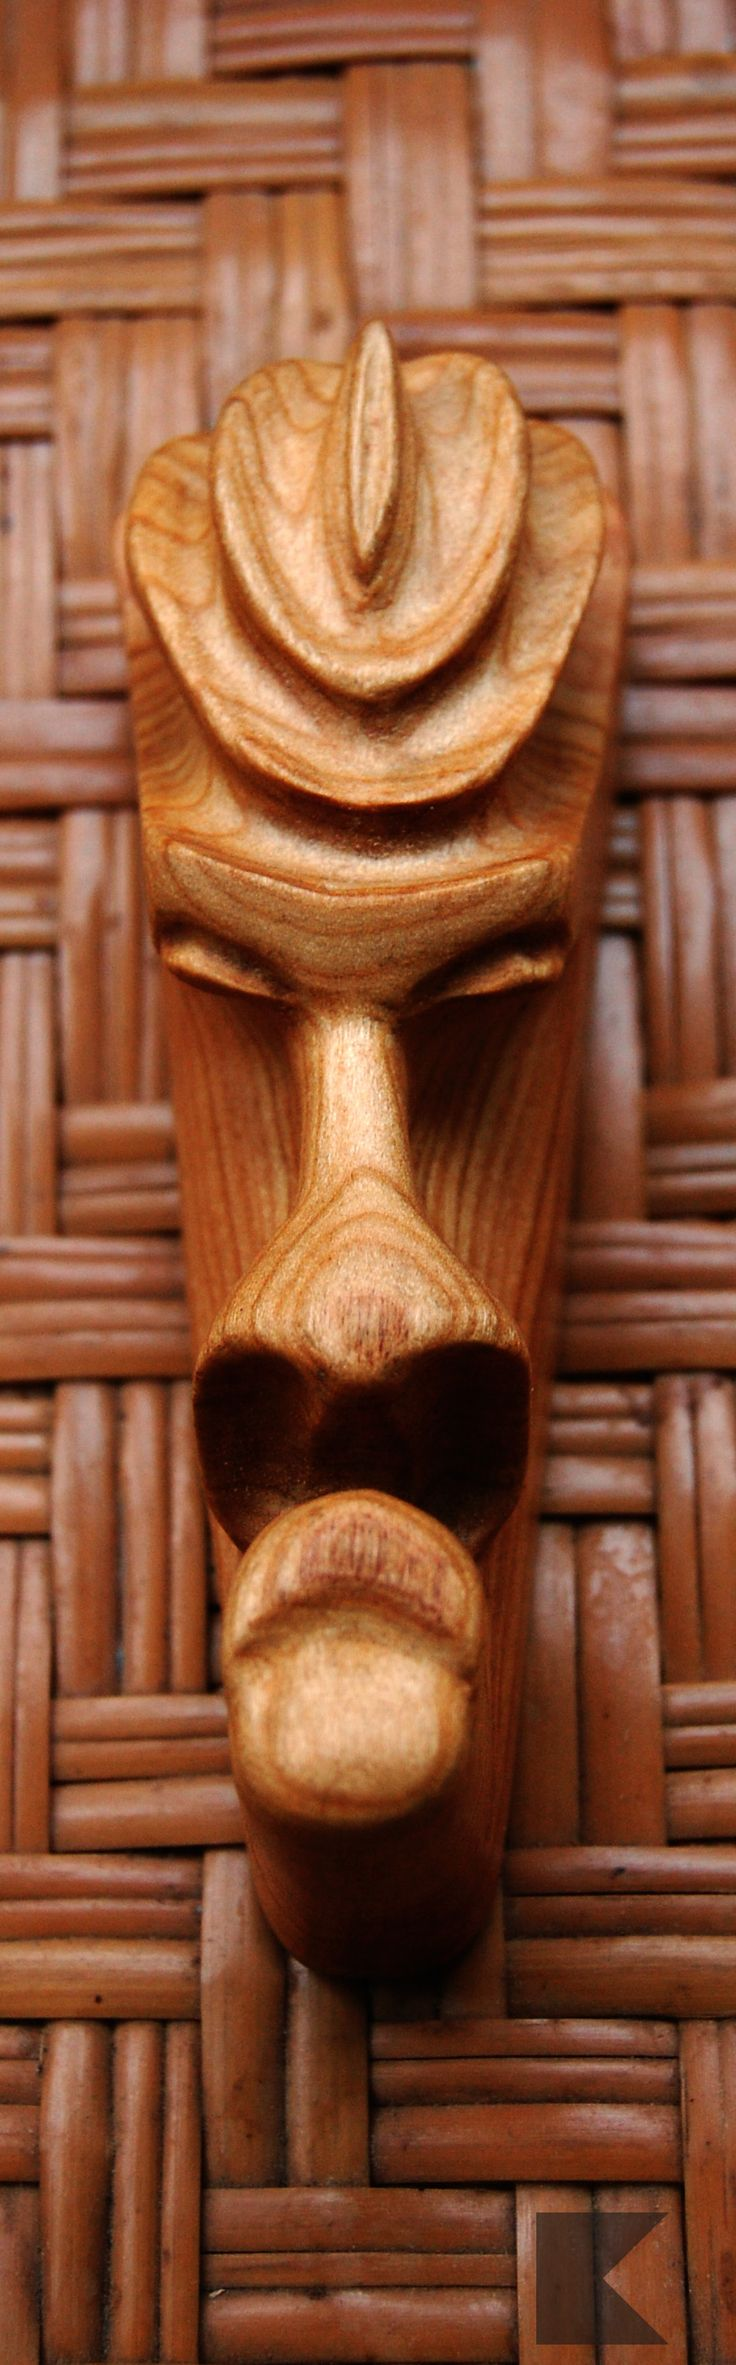 #Cherry #wood #Figastyan #face #k-pipes #carved #mask